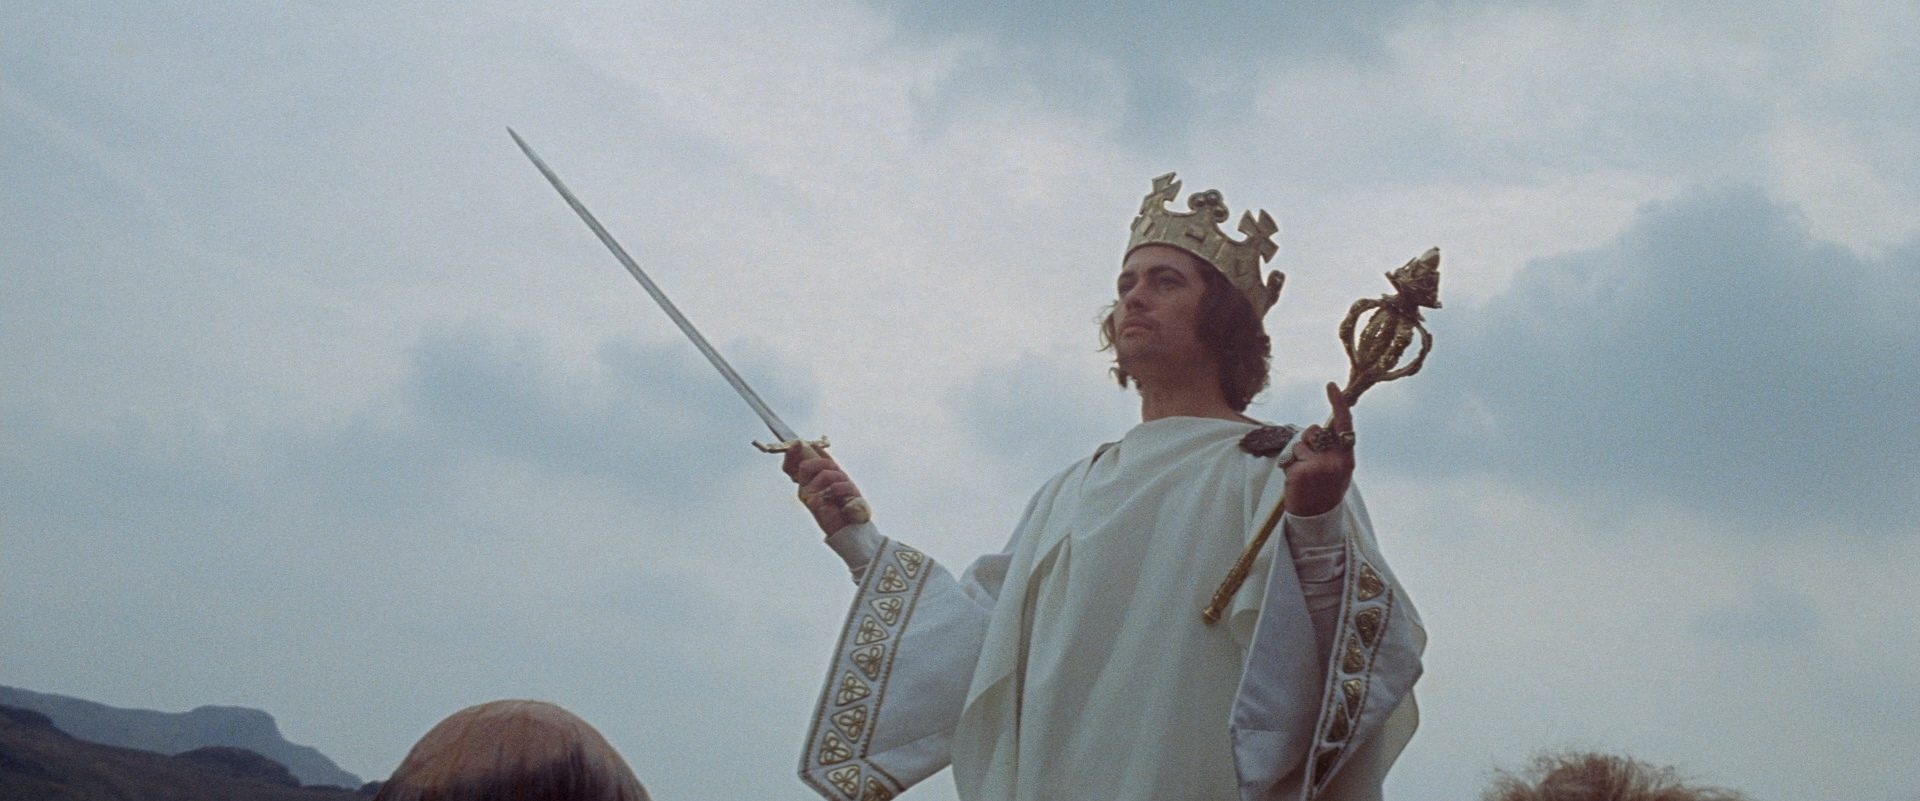 C'era una volta… il Macbeth di Polanski